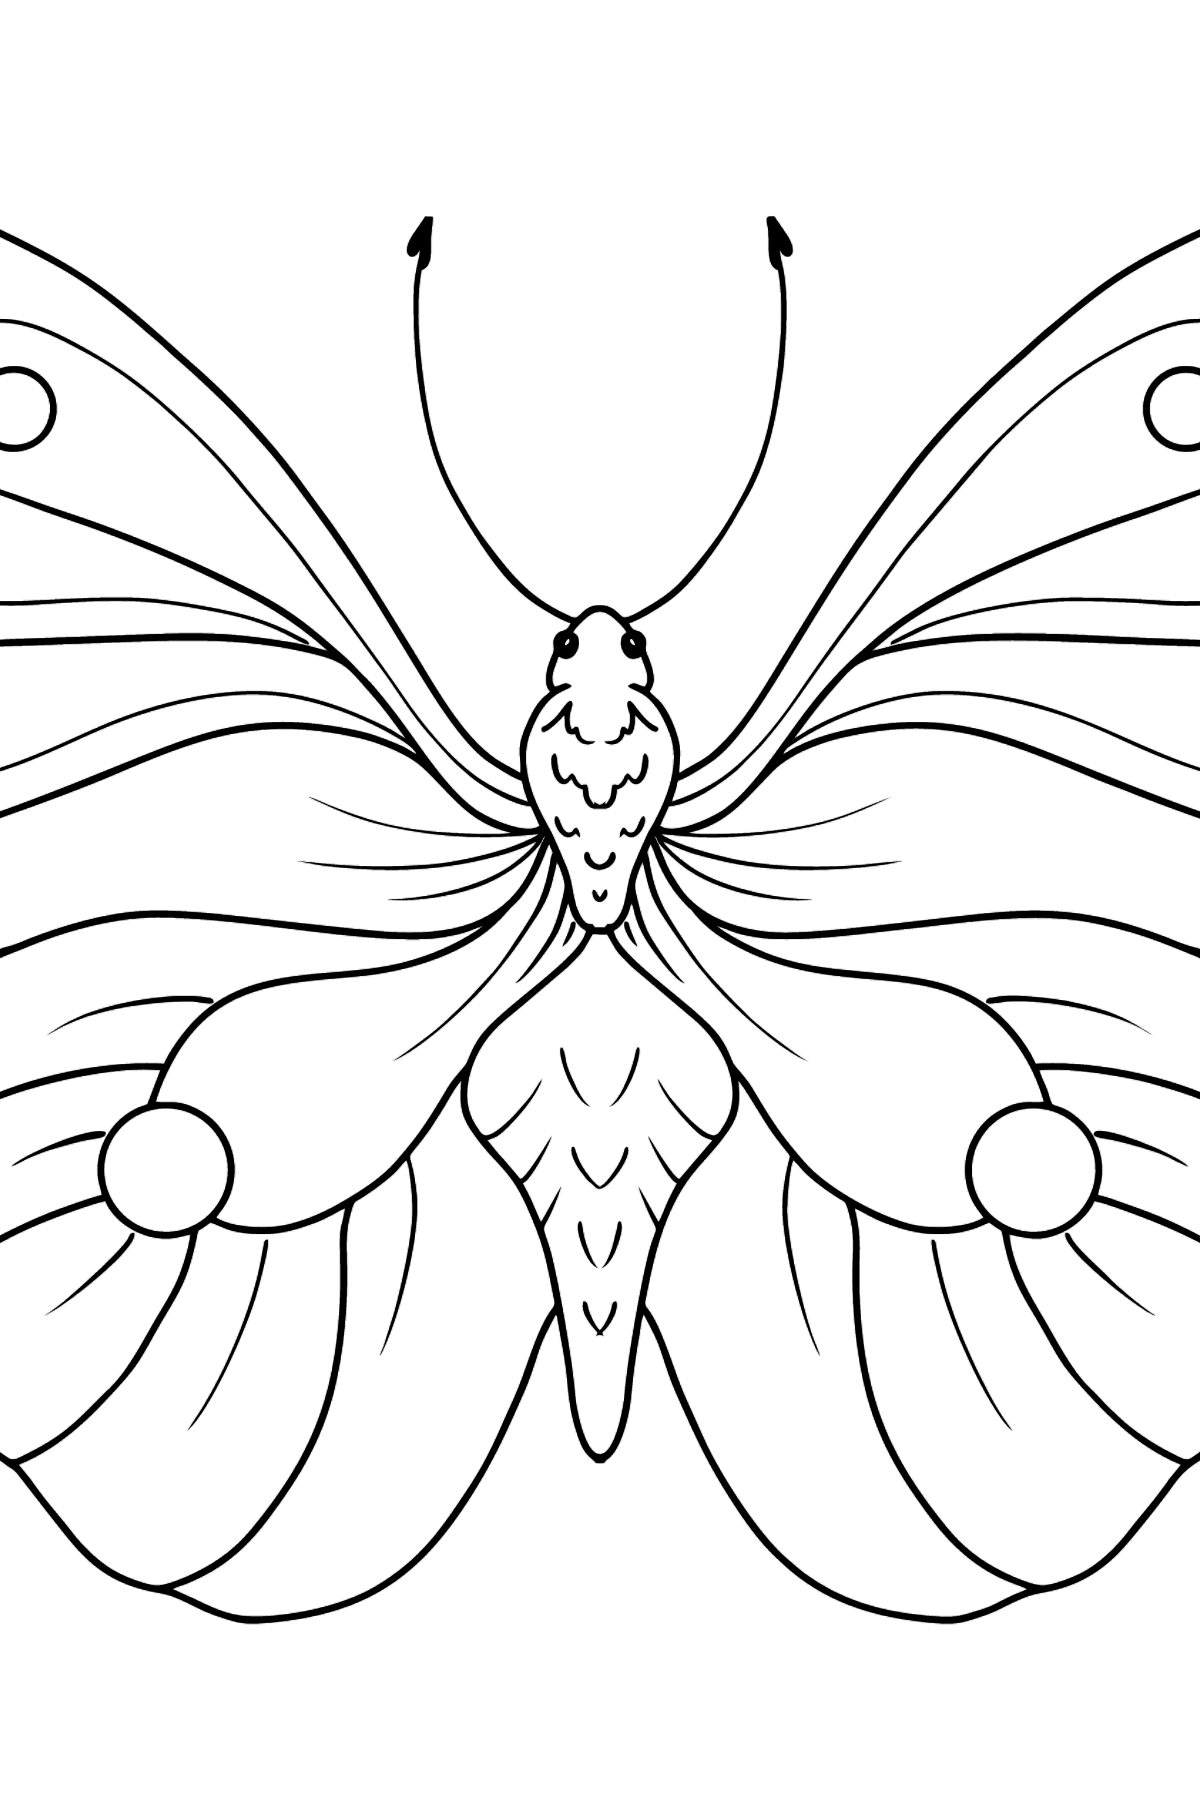 Lemongrass Butterfly coloring page - Coloring Pages for Kids